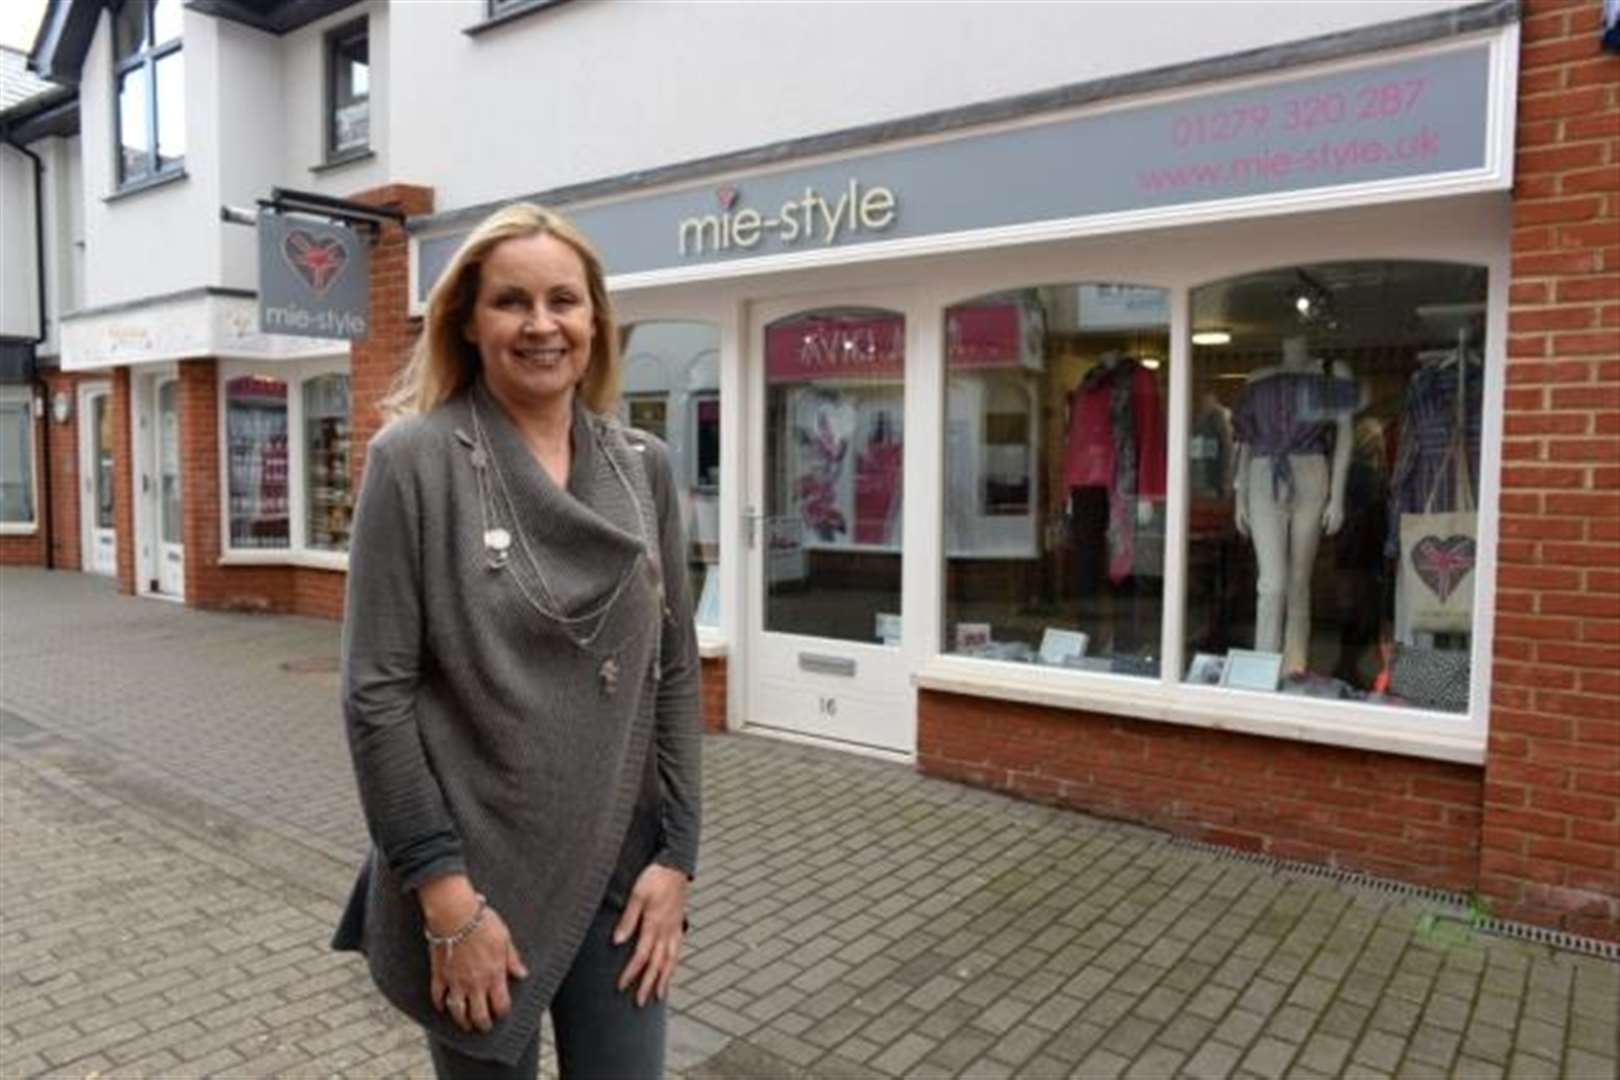 Hockerill boutique moves to town centre